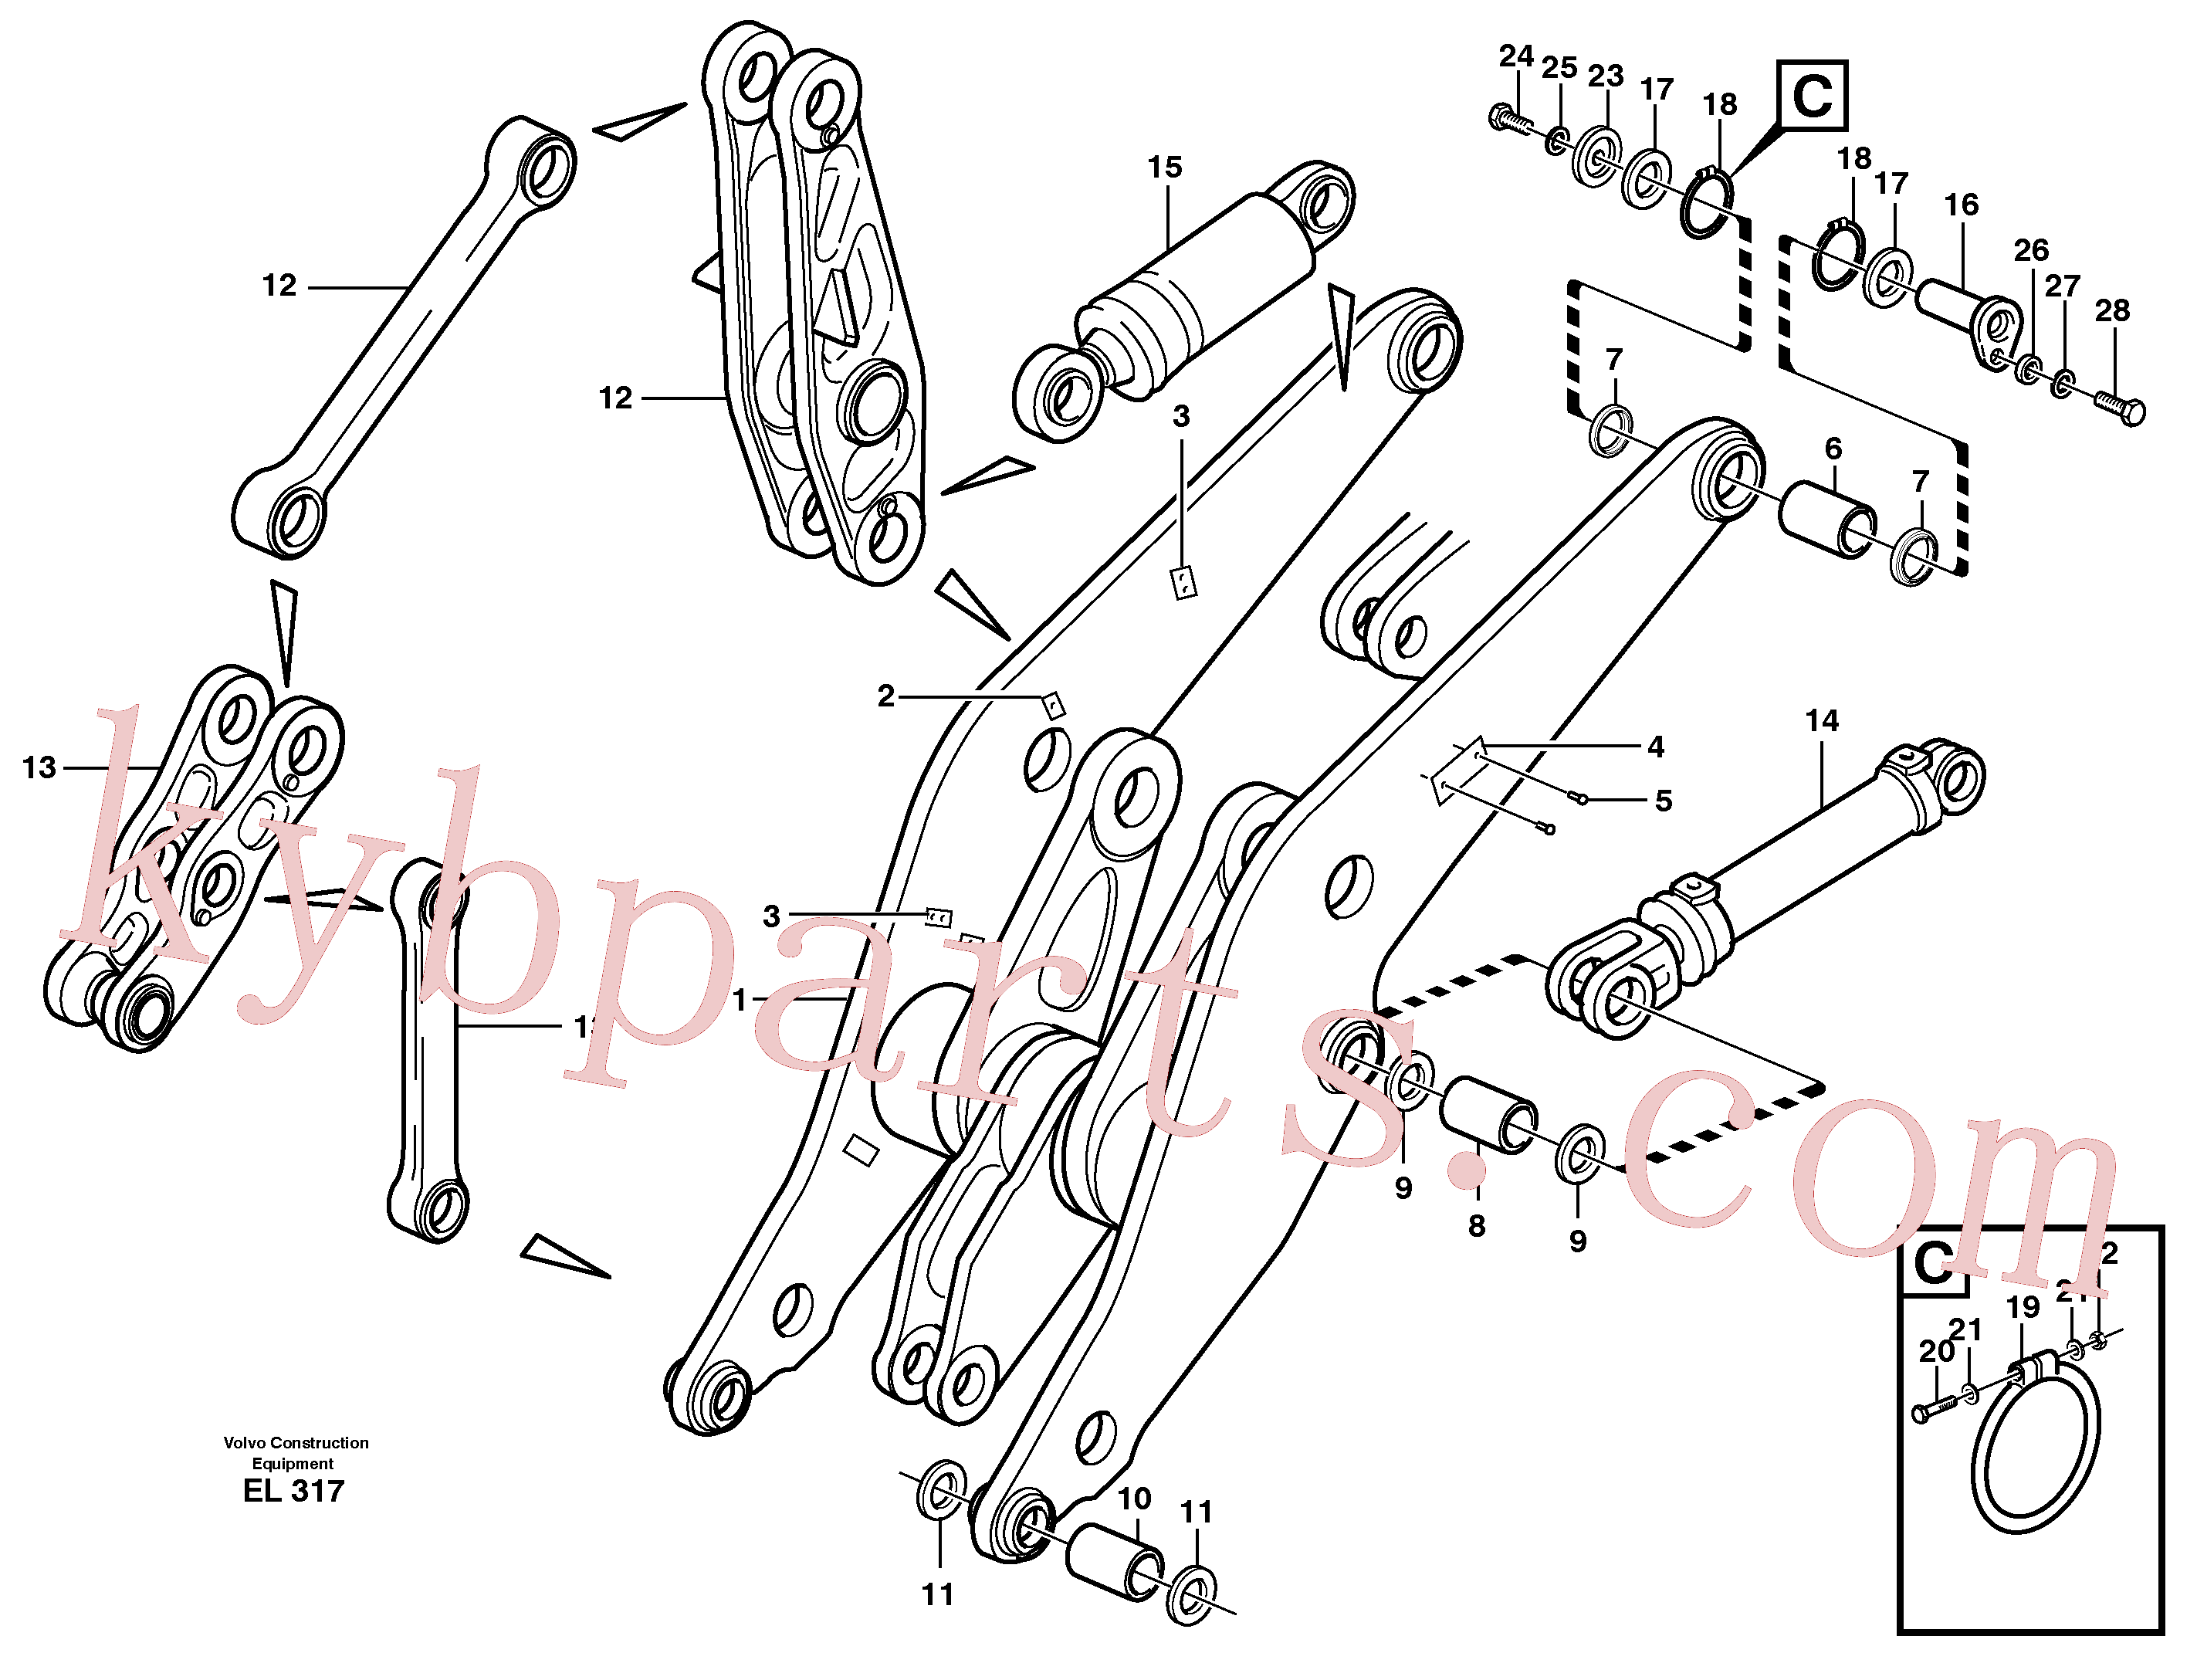 VOE11075281 for Volvo Lifting frame work with assembly parts, Lifting framework with assembly parts(EL317 assembly)